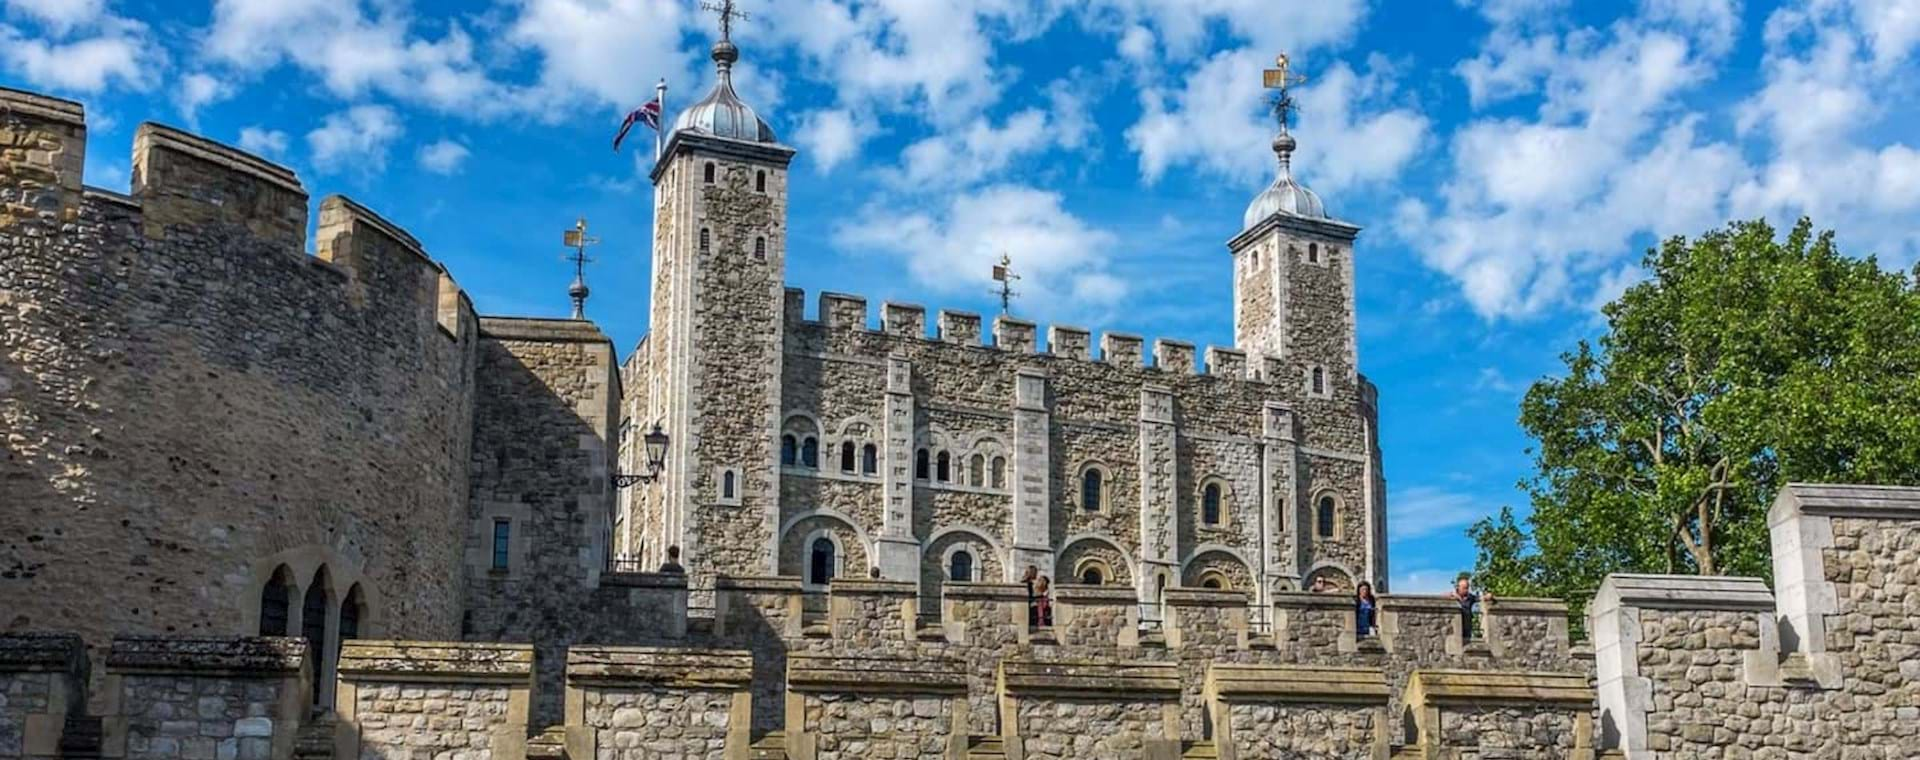 Private Audience with Beefeater & Tower of London Tour